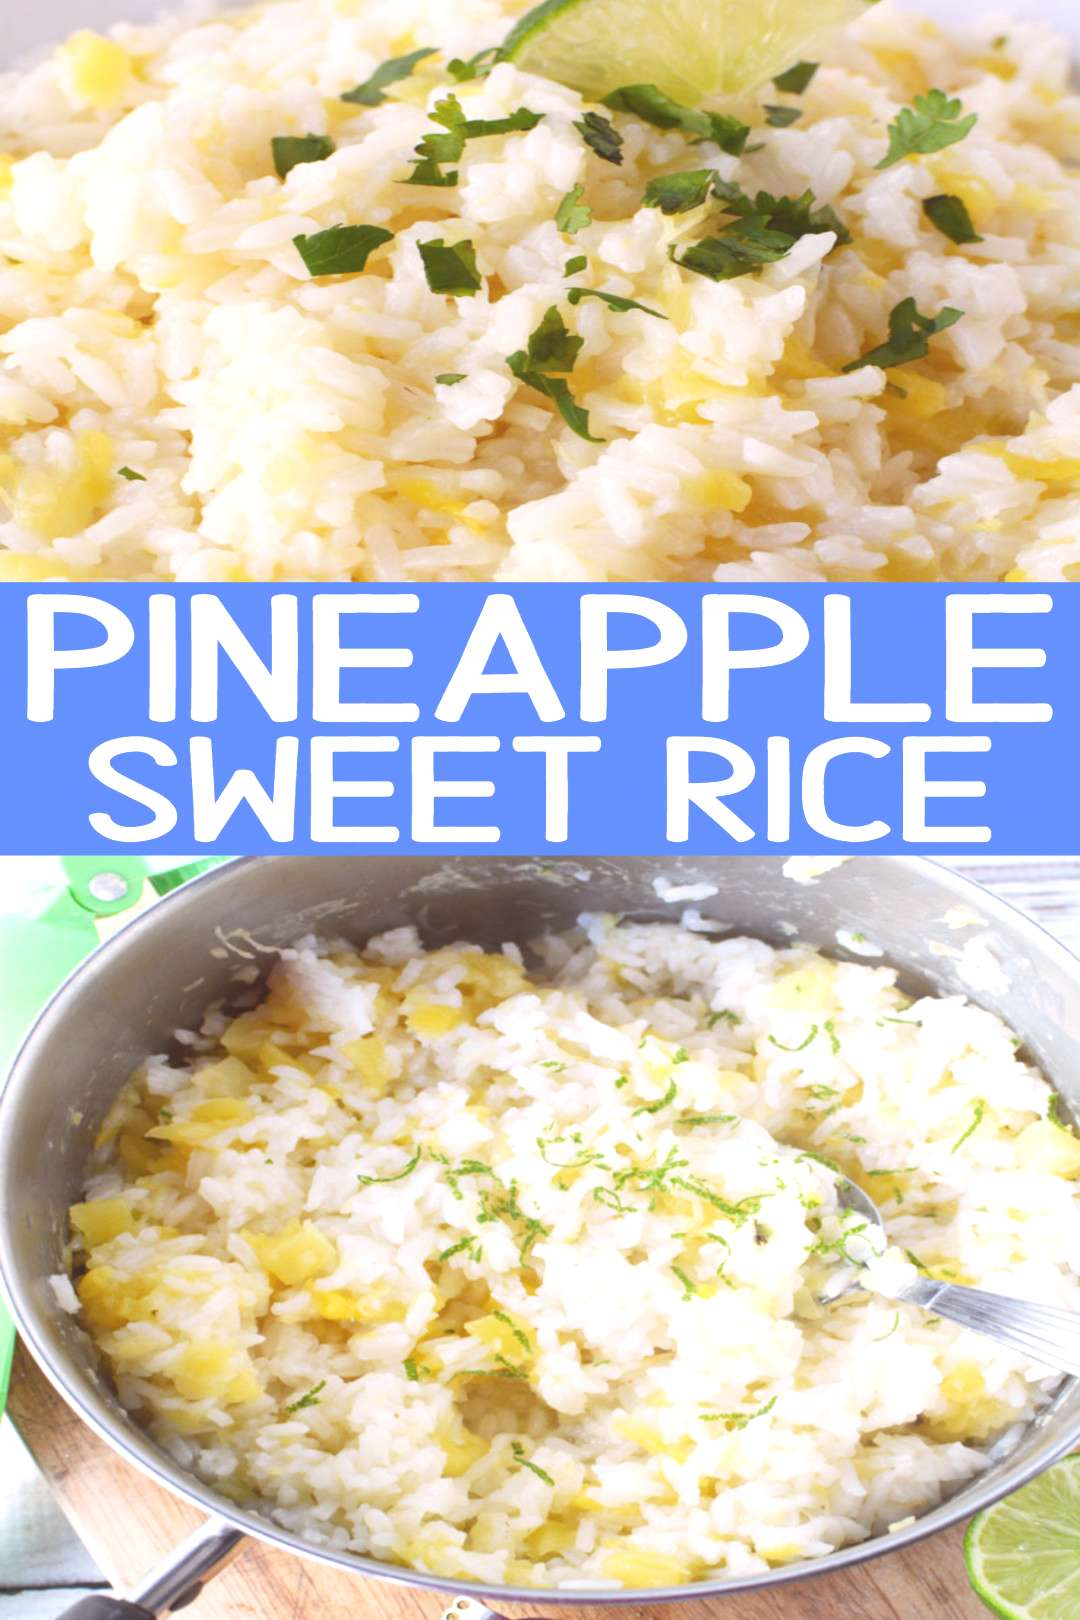 Pineapple Sweet Rice Pineapple sweet rice, a perfectly sweet rice for chicken or eat as a side dish